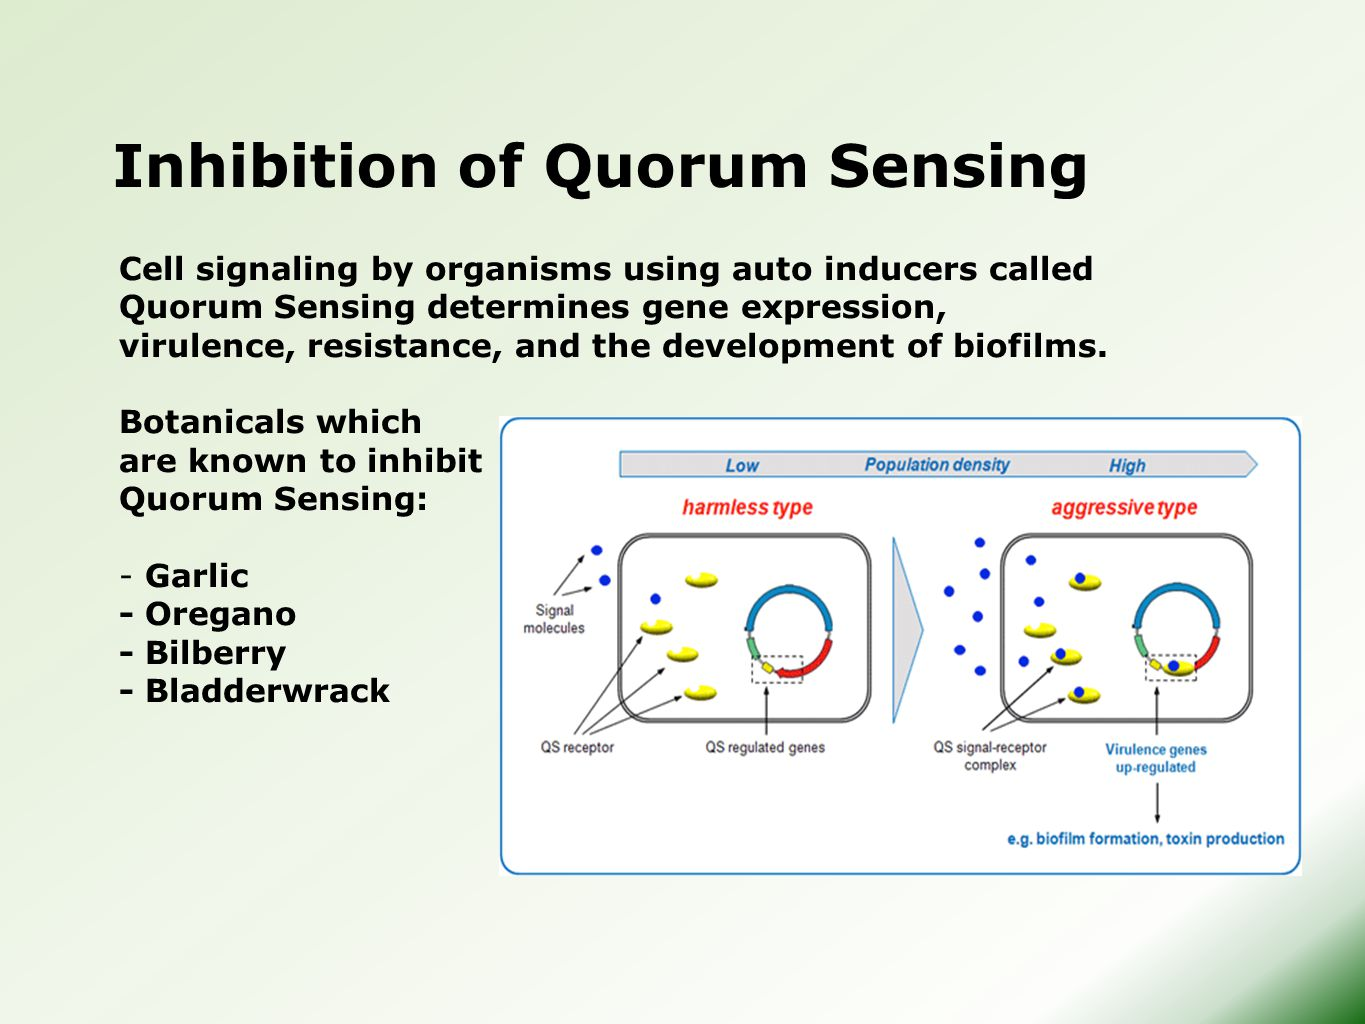 Inhibition of Quorum Sensing